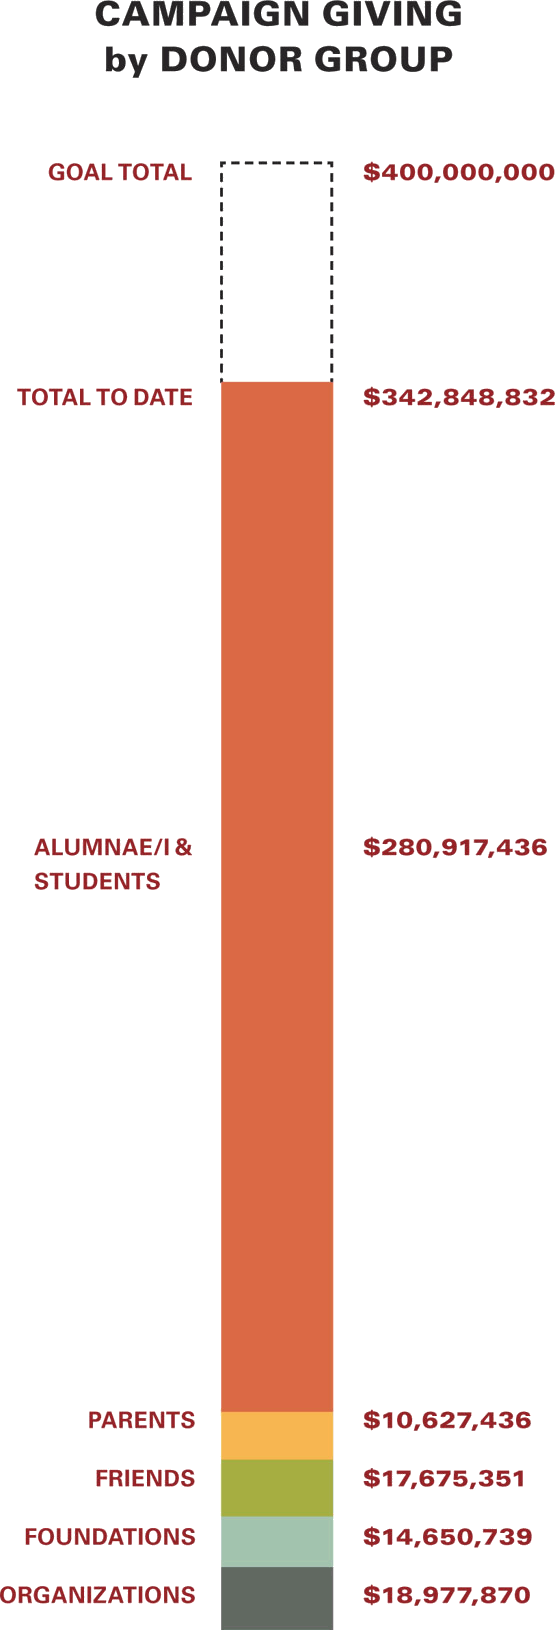 Campaign giving by donor group: - Organizations ($18,977,870) - Foundations ($14,650739) - Friends ($17,675,351) - Parents ($10627,436) - Alumnae/i and Students ($280,917,436) - Total to date ($342,848,832) - Goal Total ($400,000,000)